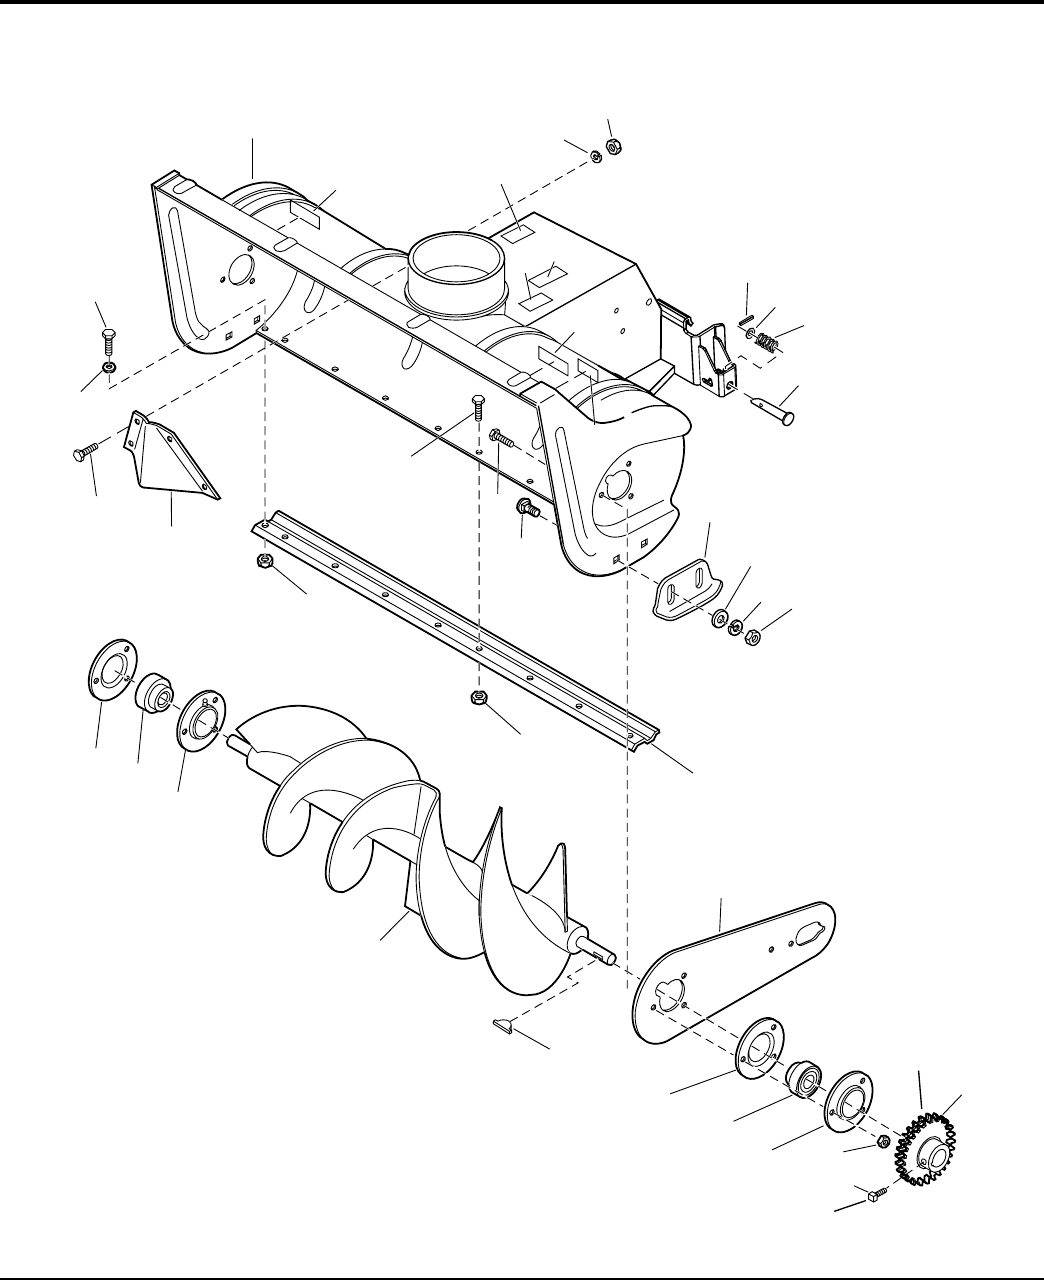 Page 2 of Simplicity Snow Blower Attachment 1694403 User